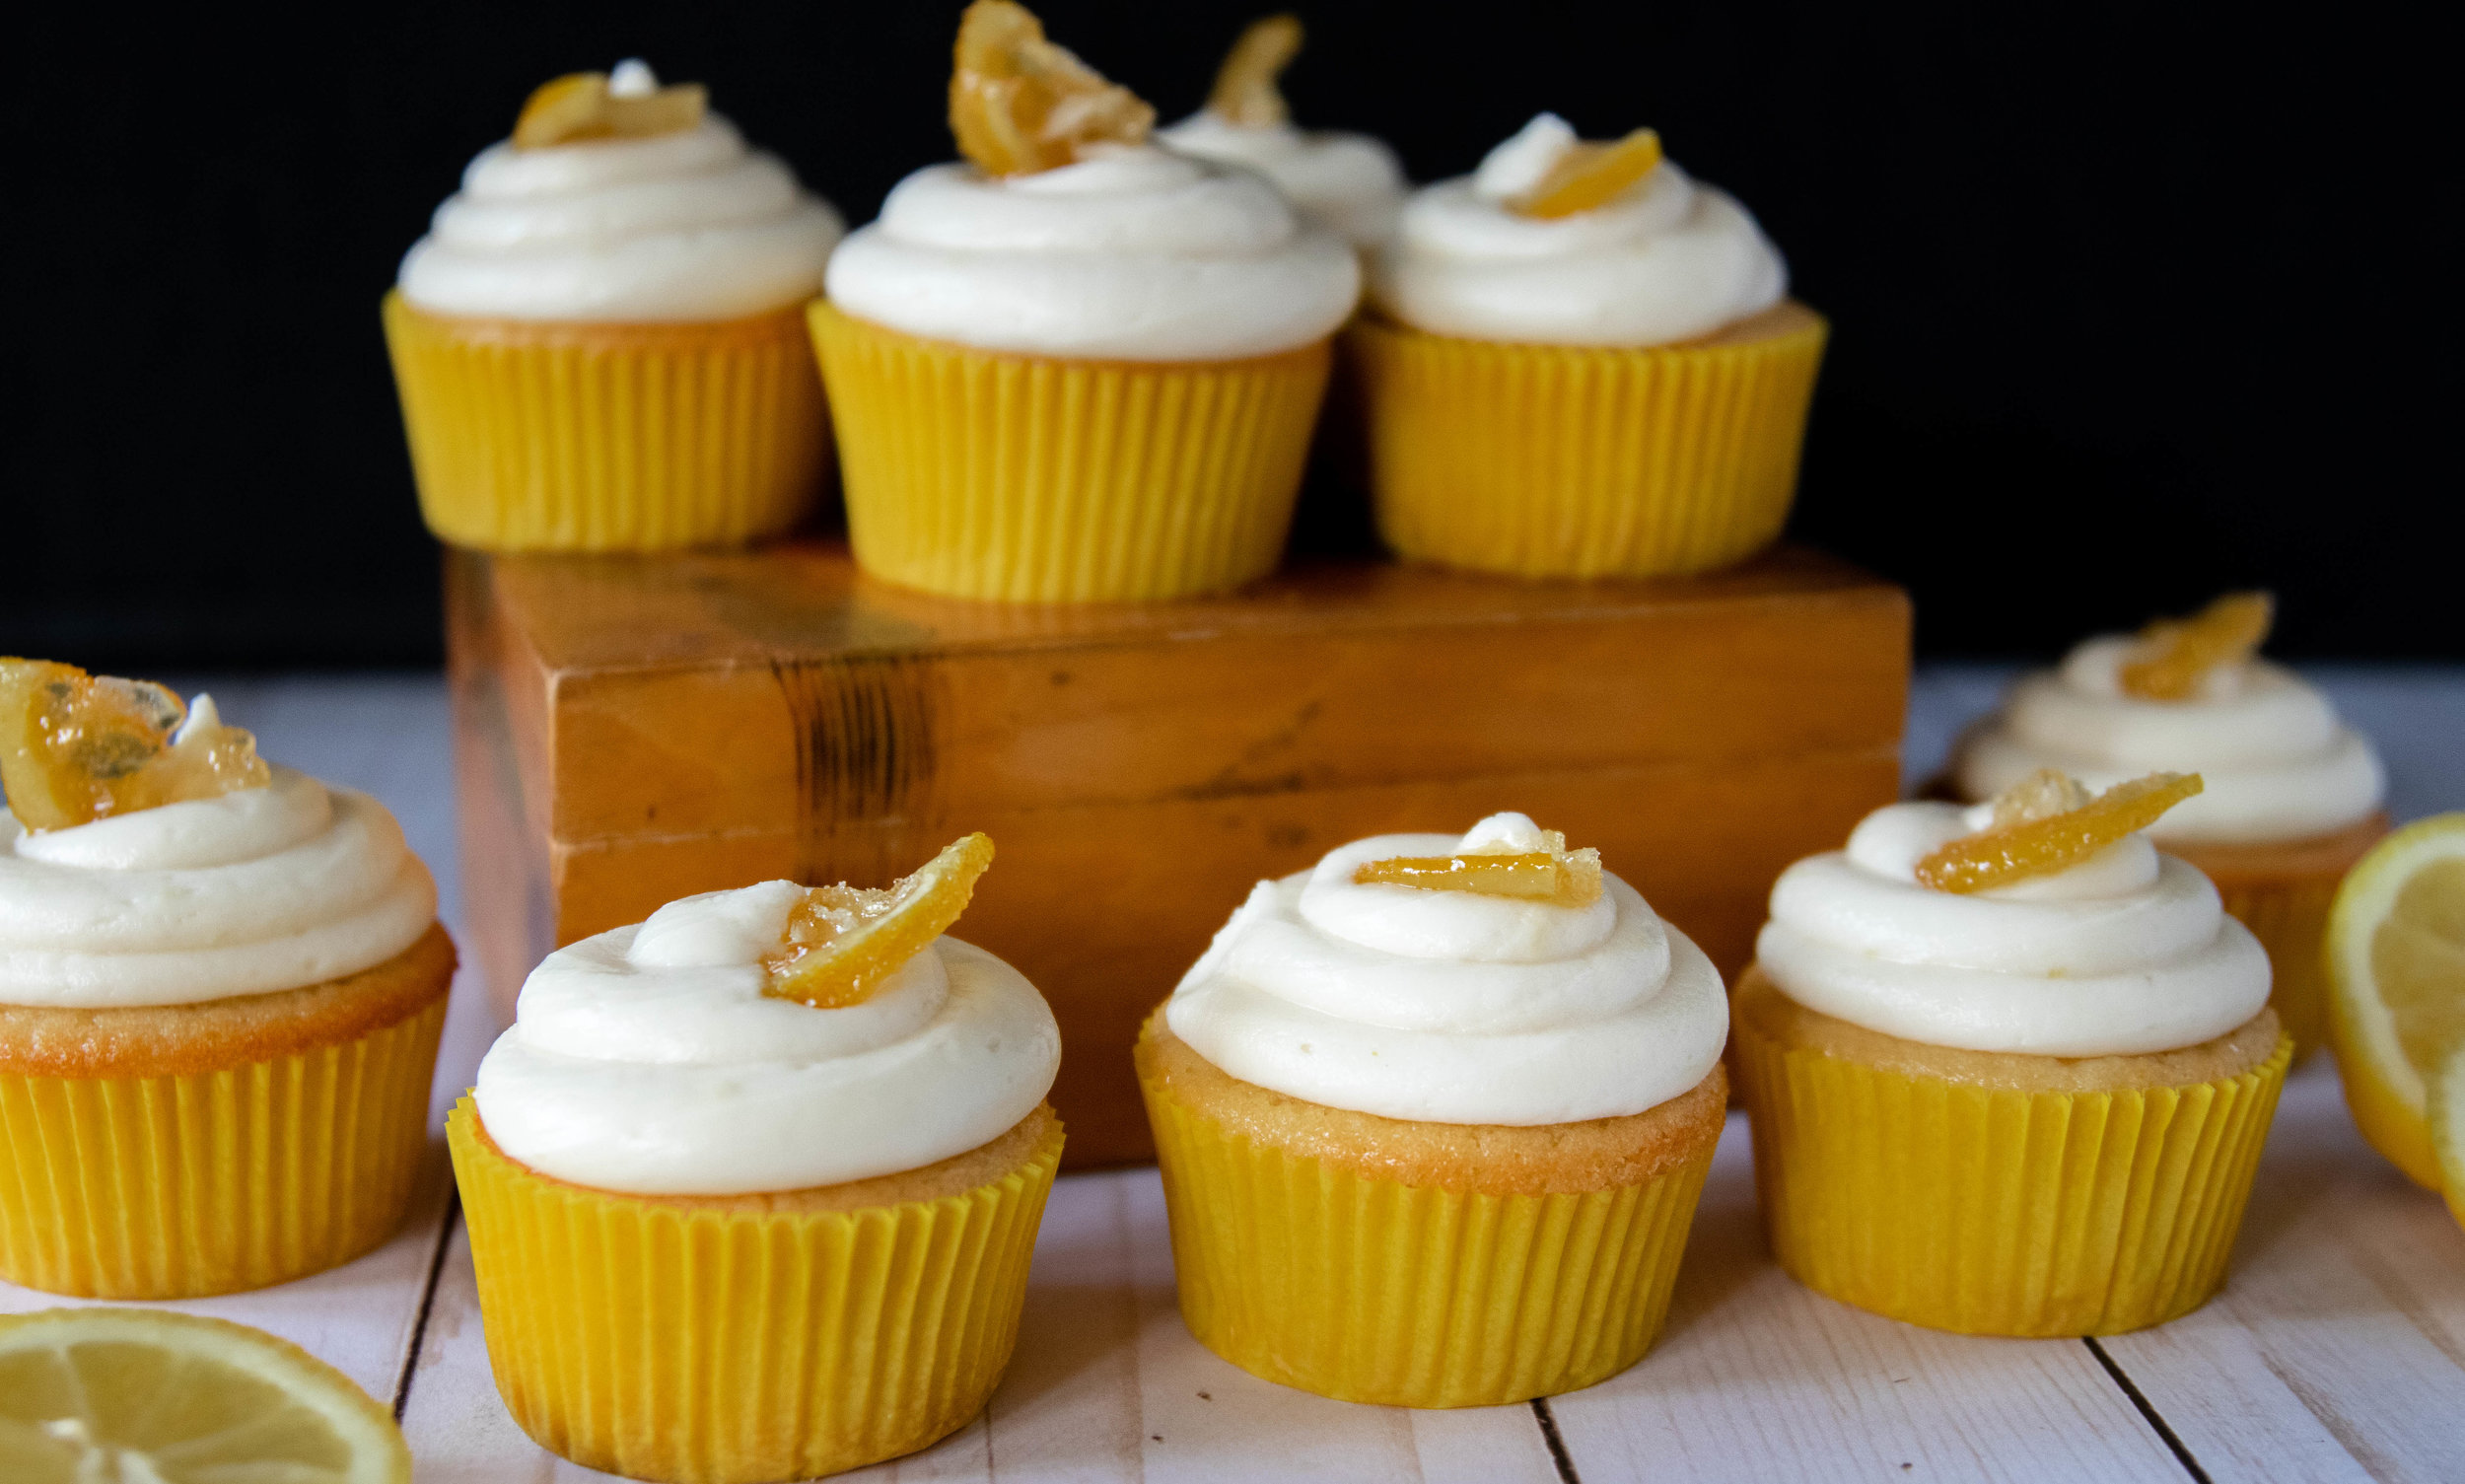 A closeup of delicious vegan lemon cupcakes with cream cheese frosting garnished with candied lemons.